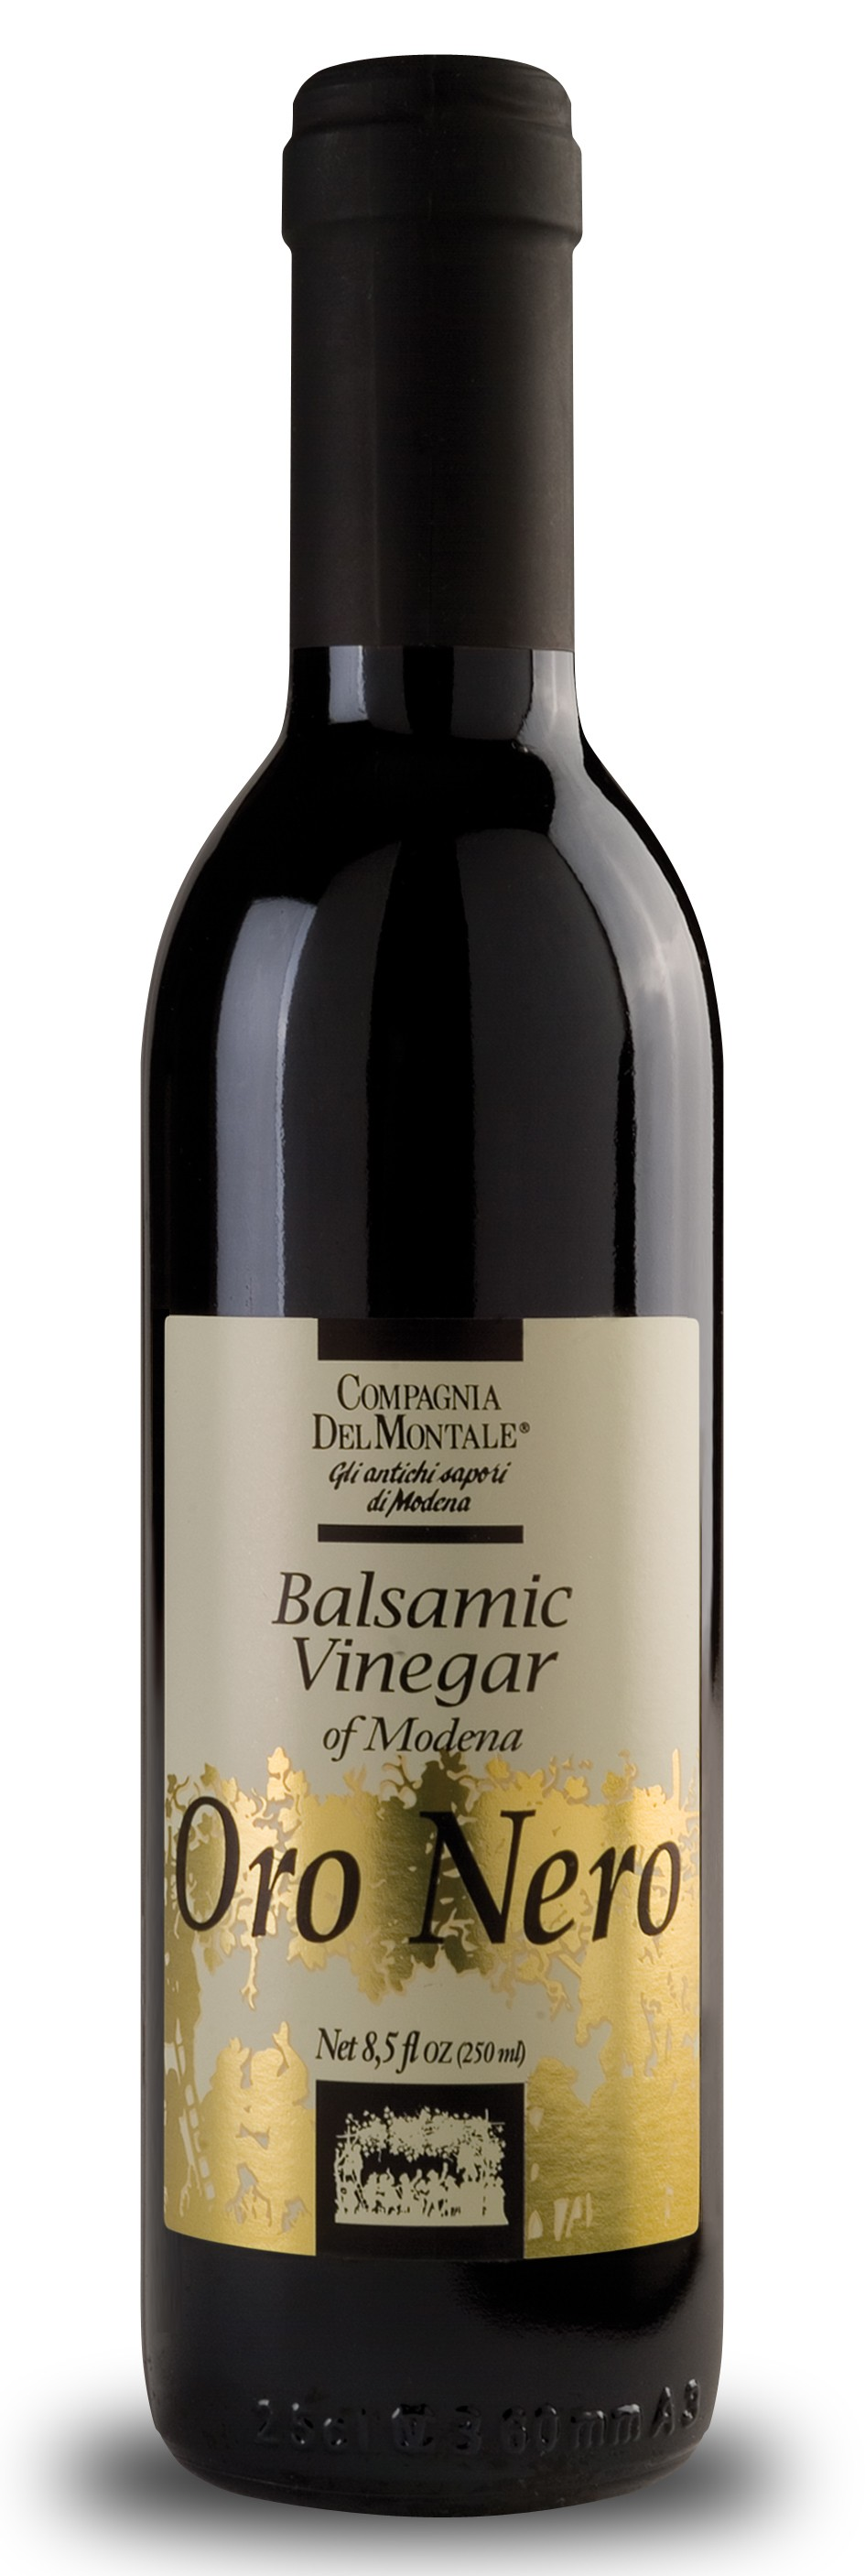 balsamic-vinegar_hesq-vq